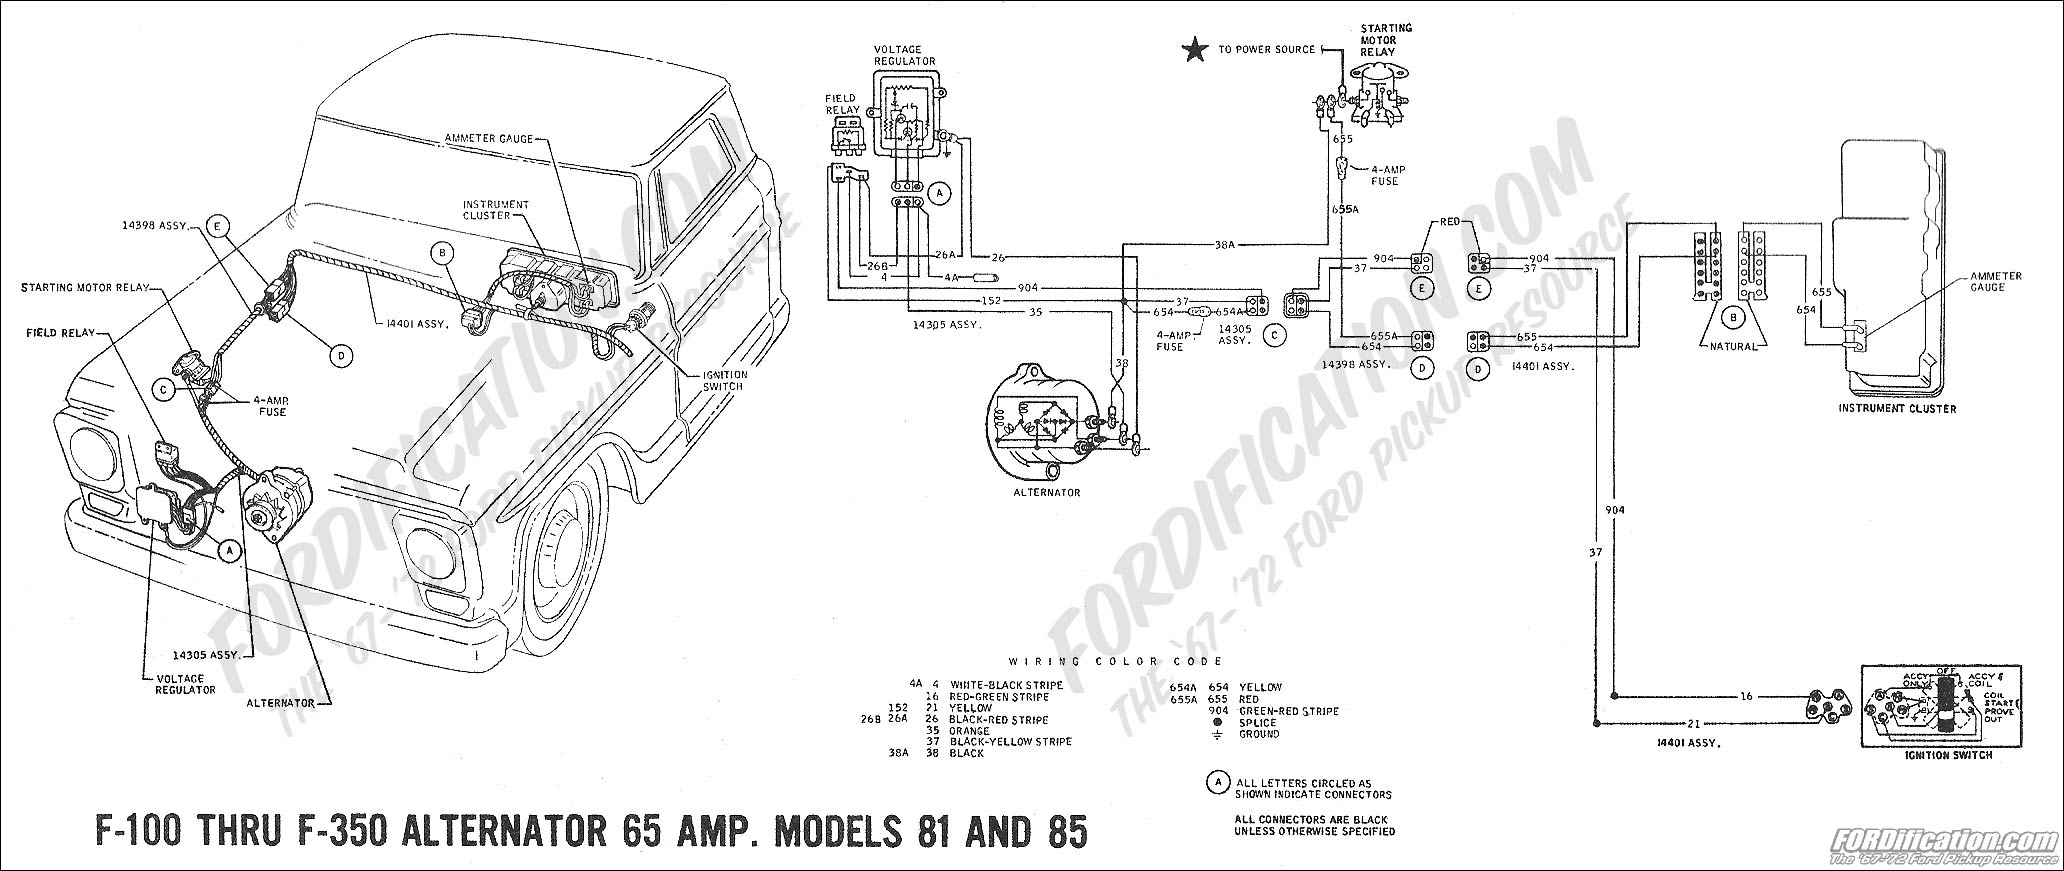 wiring_69charging03 ford truck technical drawings and schematics section h wiring Ford Tempo Alternator Wiring Diagram at edmiracle.co